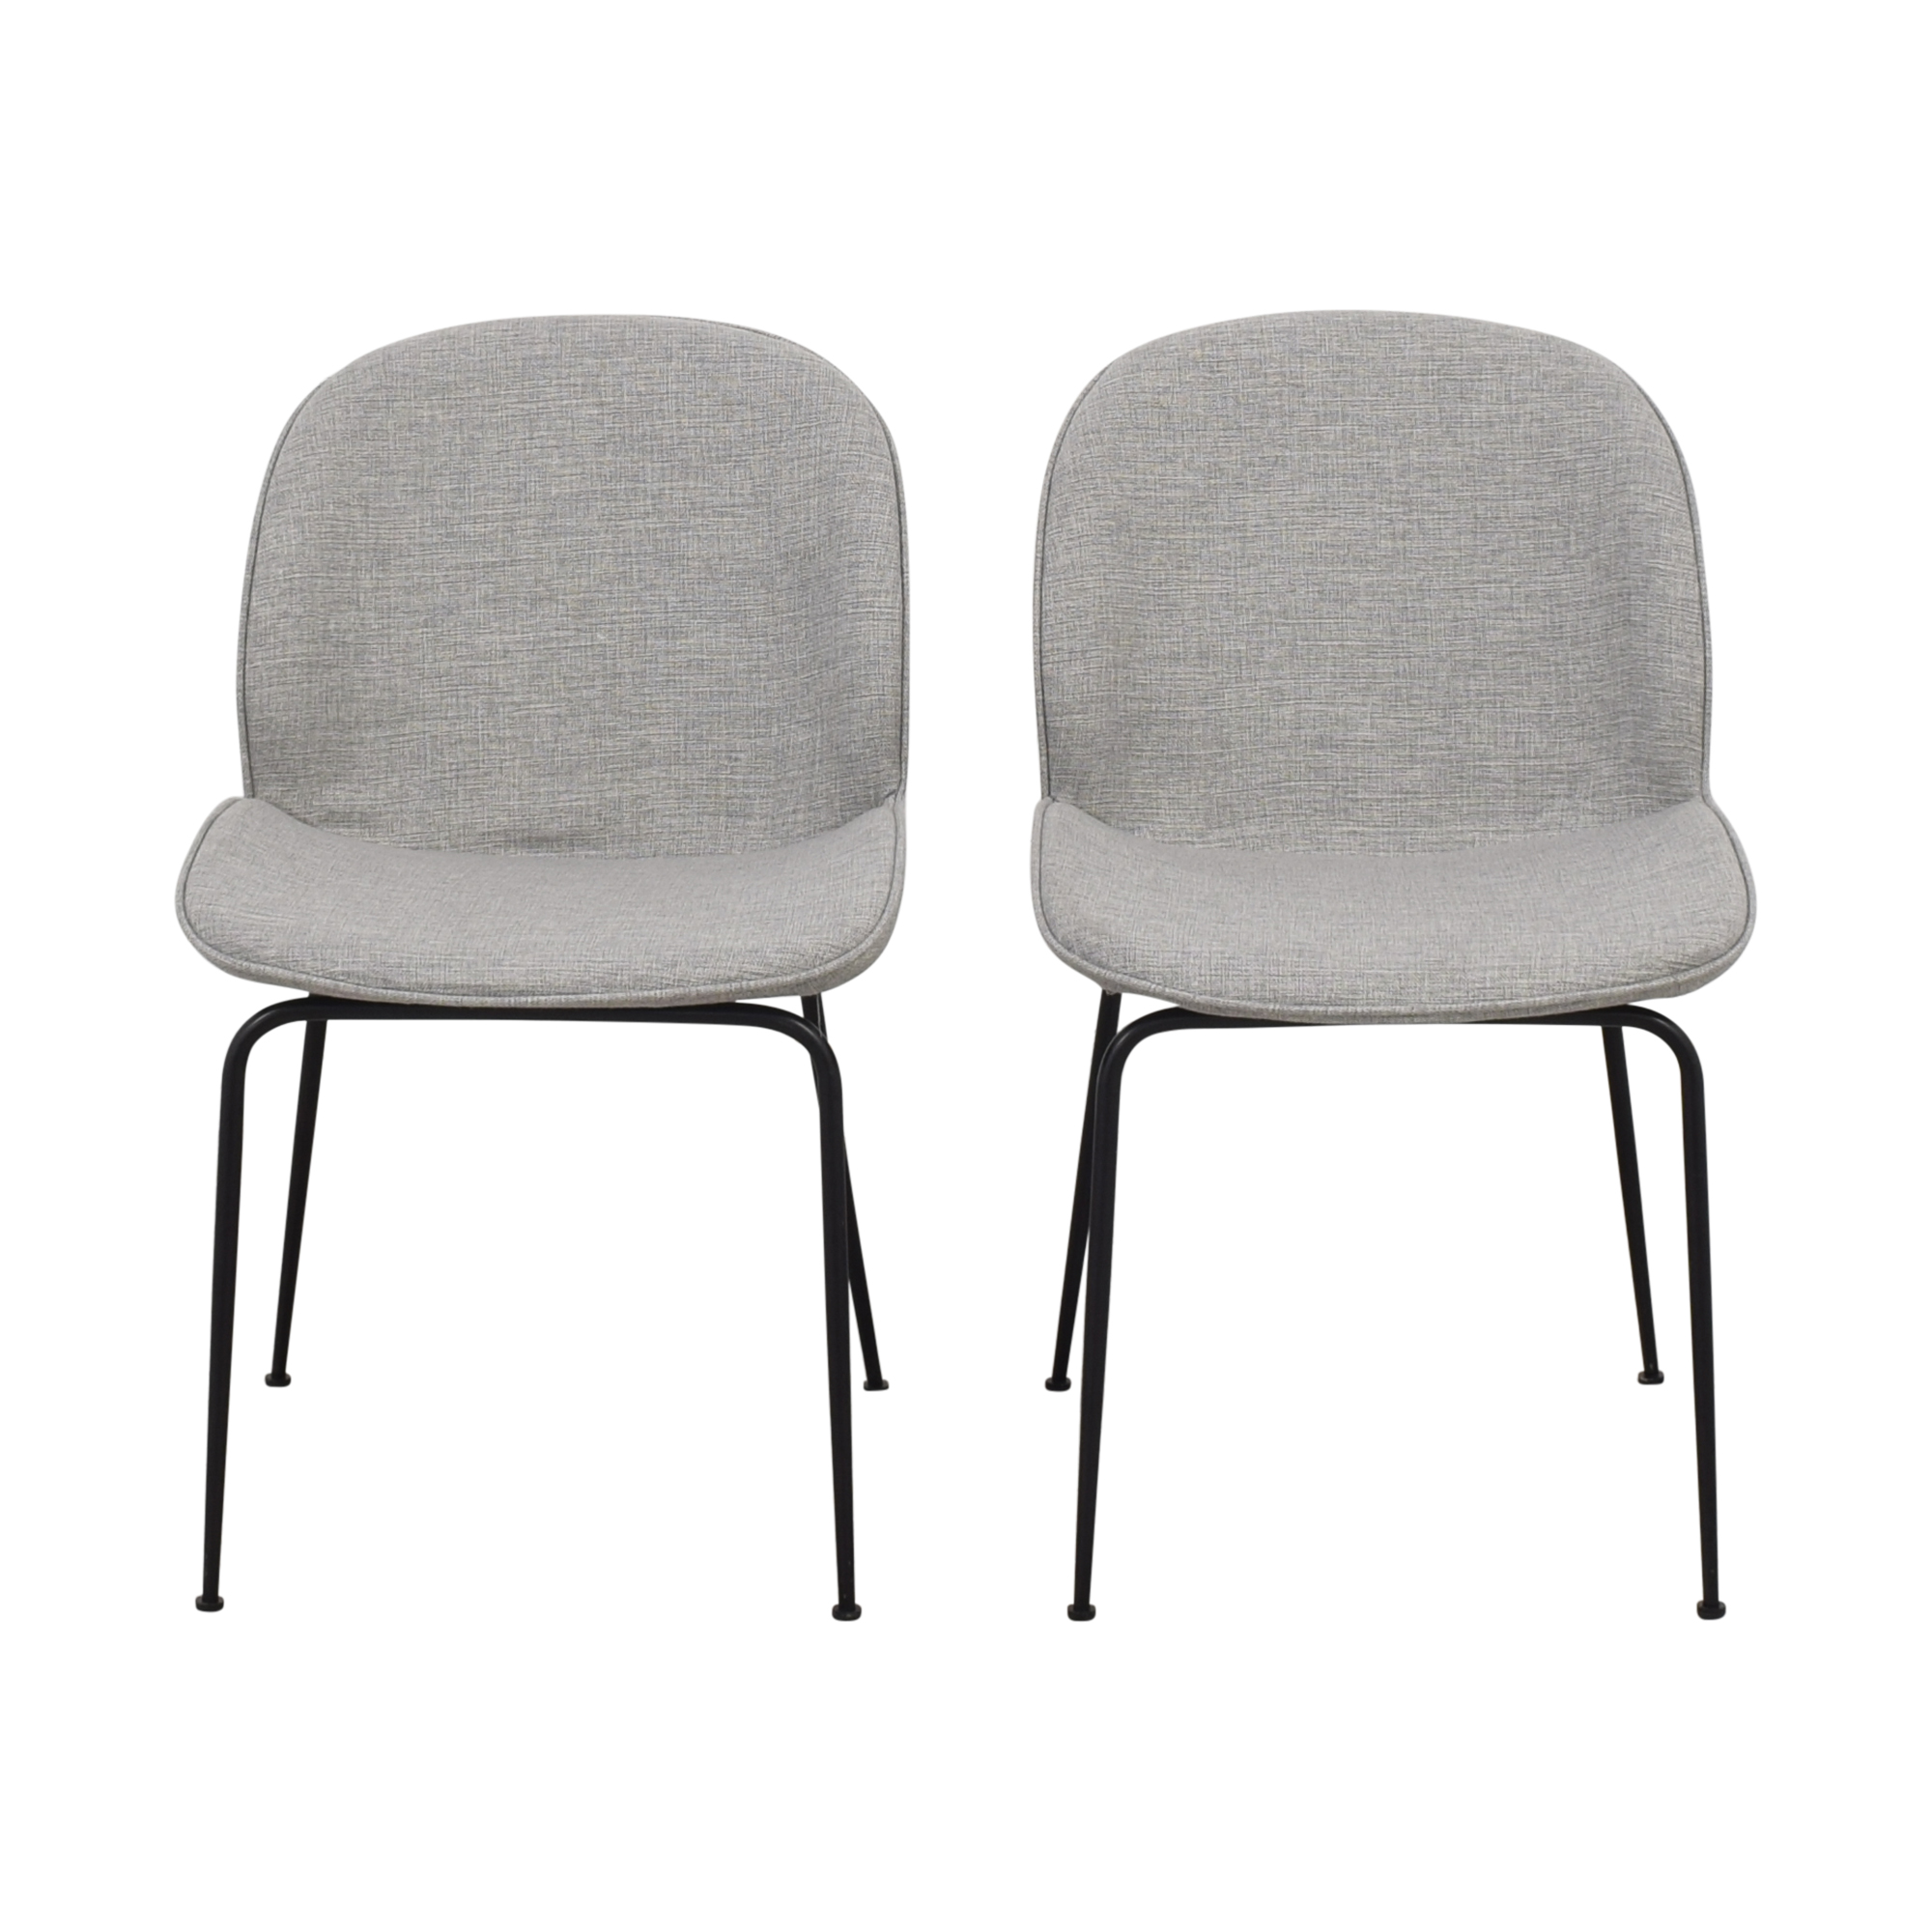 Stoll Upholstered Dining Chairs